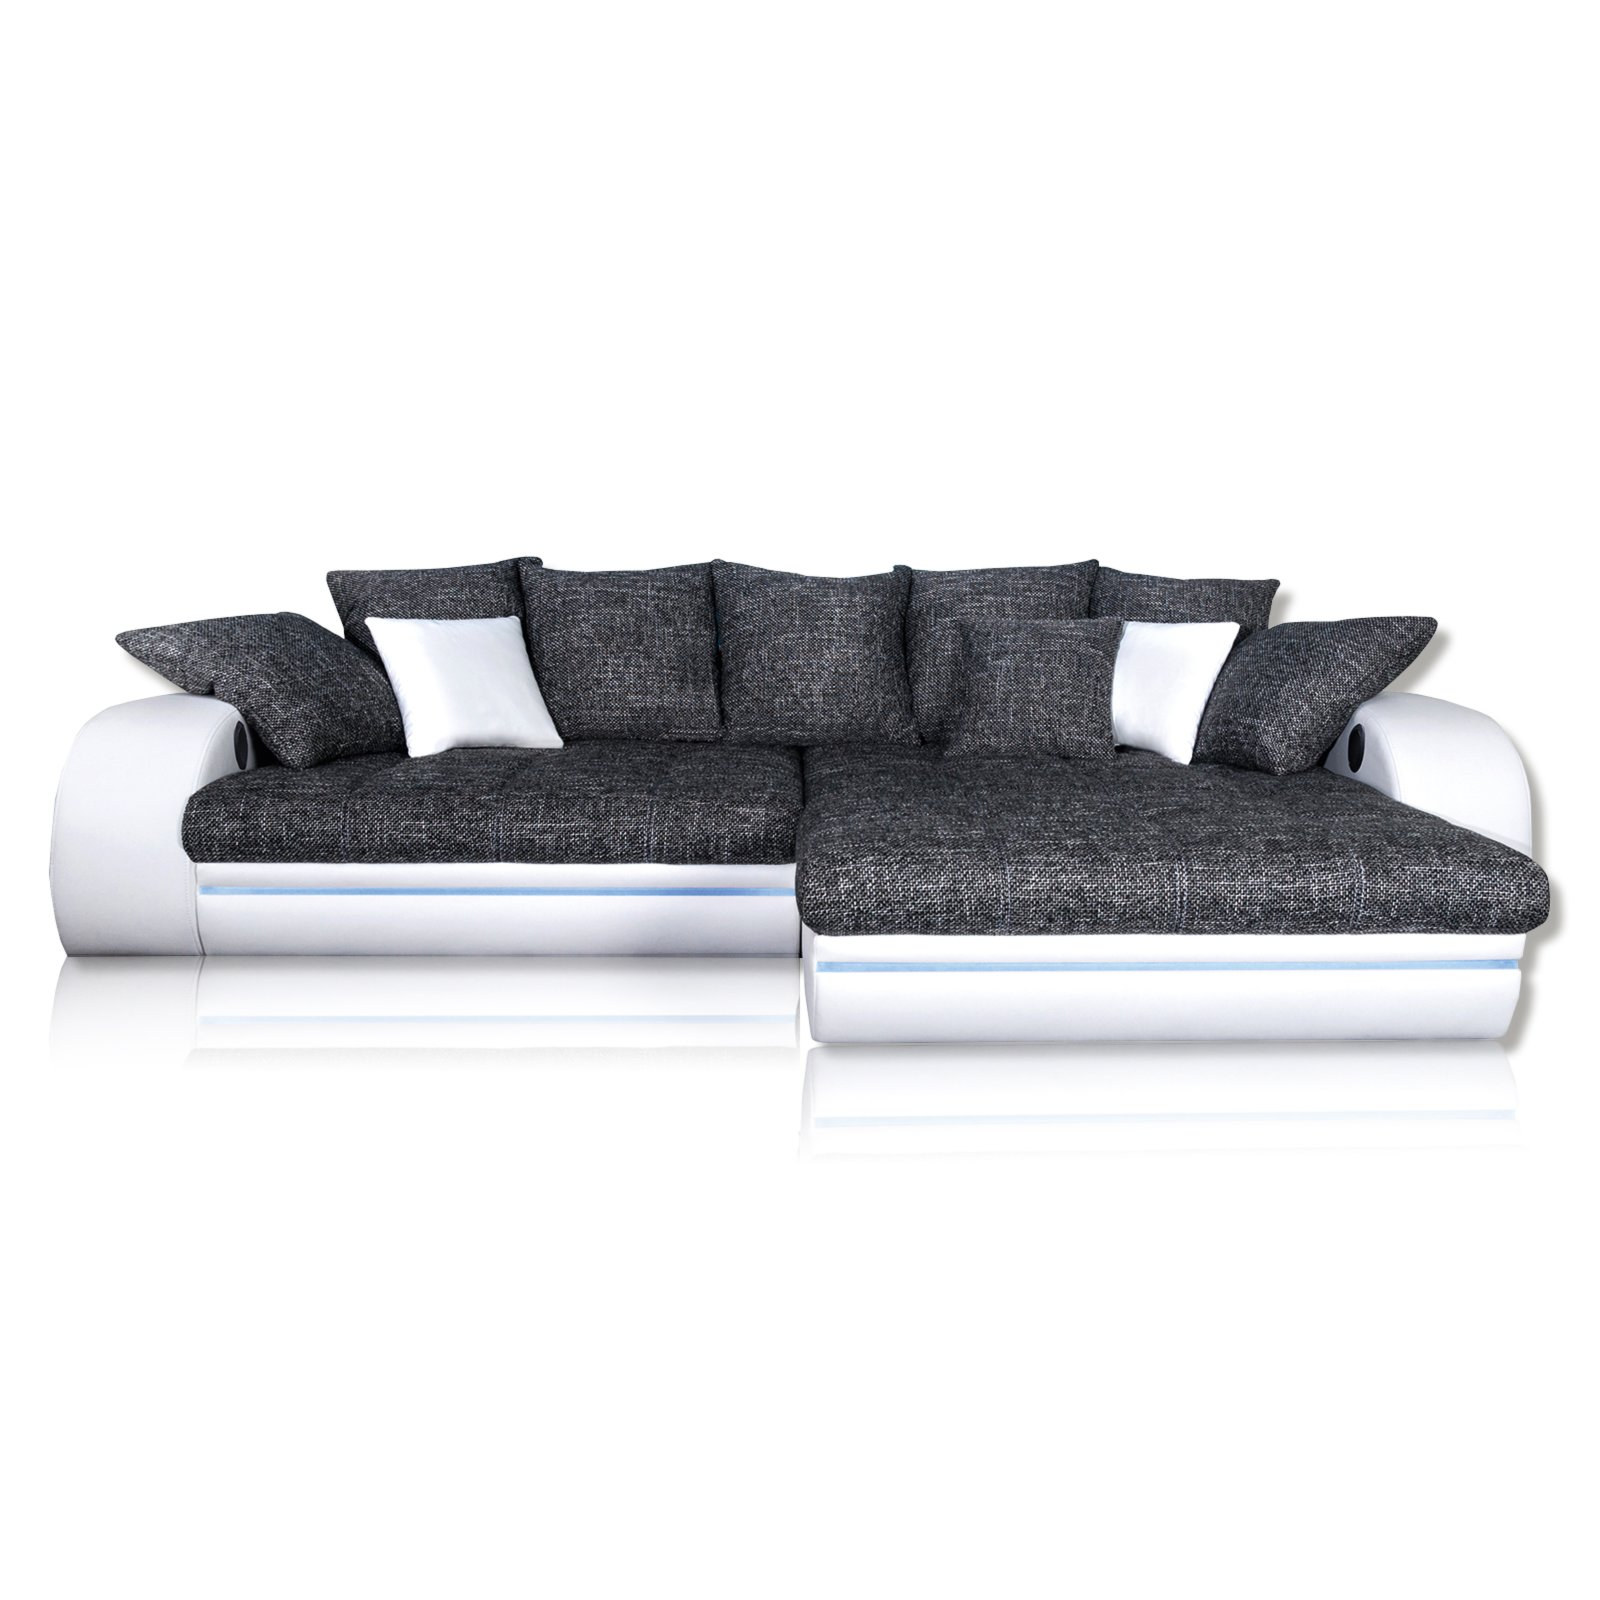 ecksofa anthrazit wei mit soundsystem recamiere rechts ebay. Black Bedroom Furniture Sets. Home Design Ideas